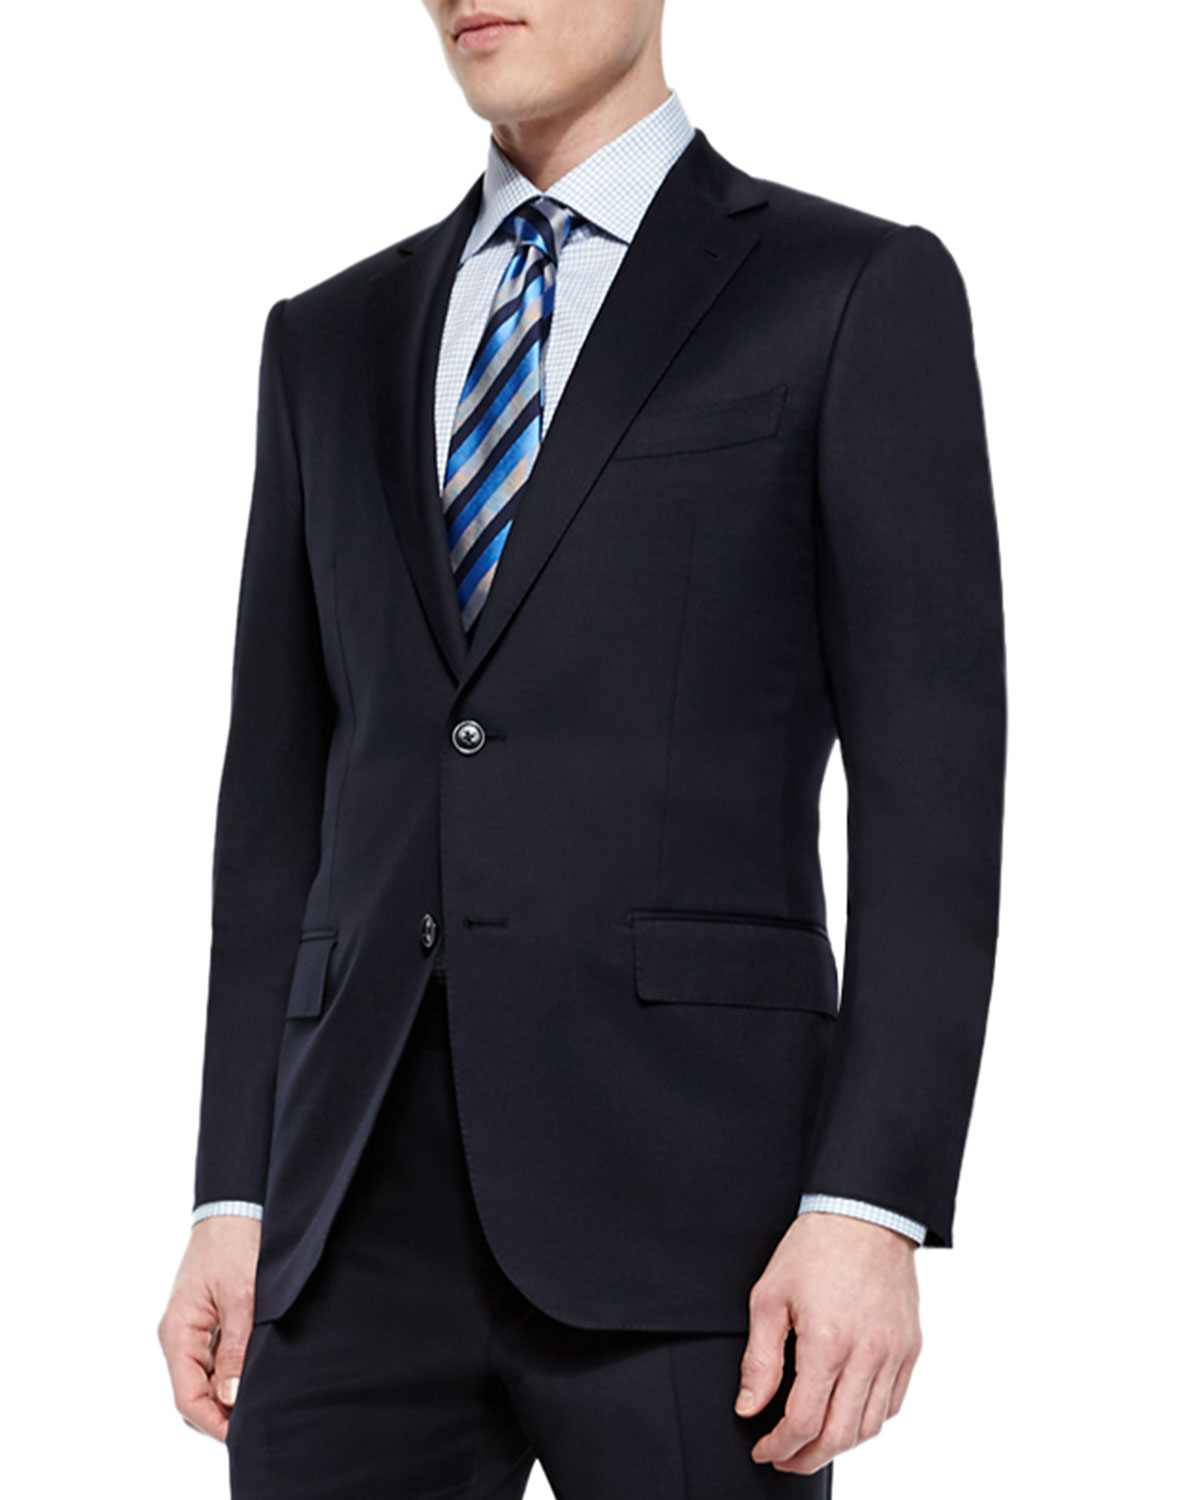 Ermenegildo Zegna Suits SOLID TWO-PIECE SOLID WOOL SUIT